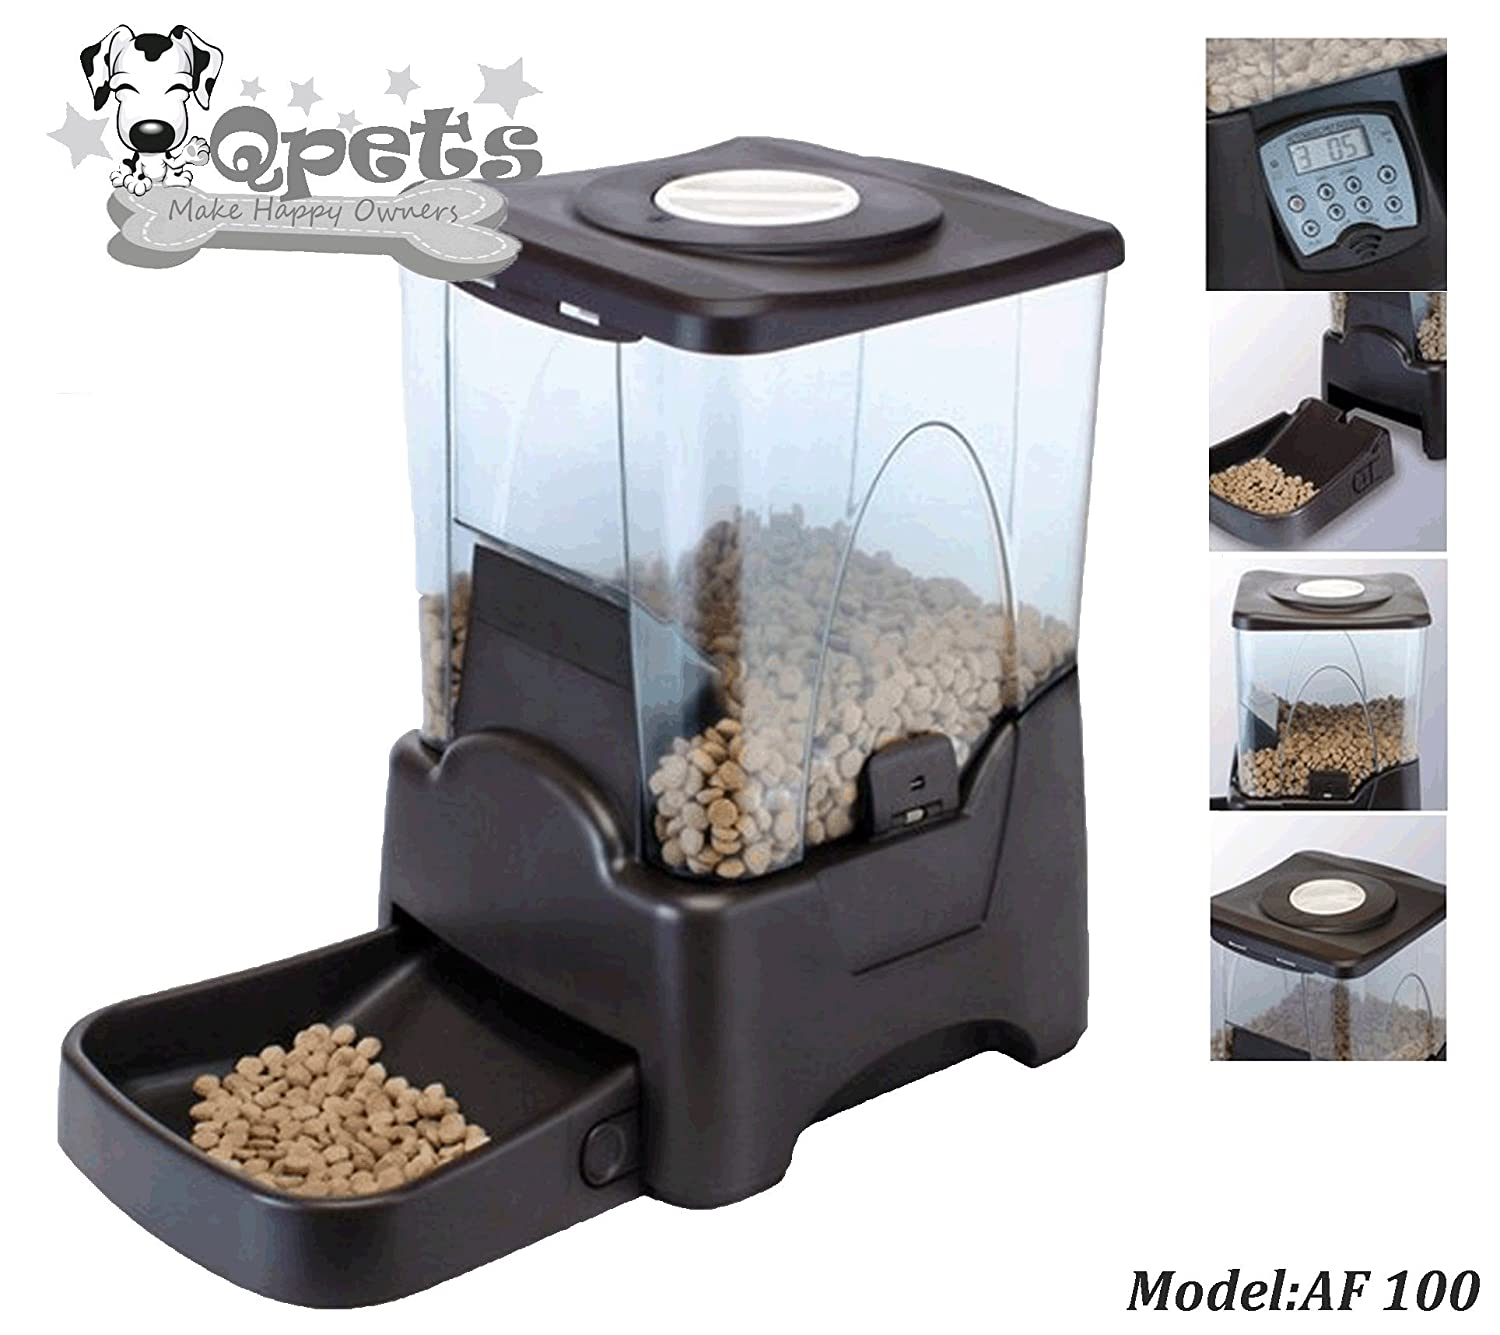 Pet Supplies Qpets Petself Electronic Feeder up to Cups